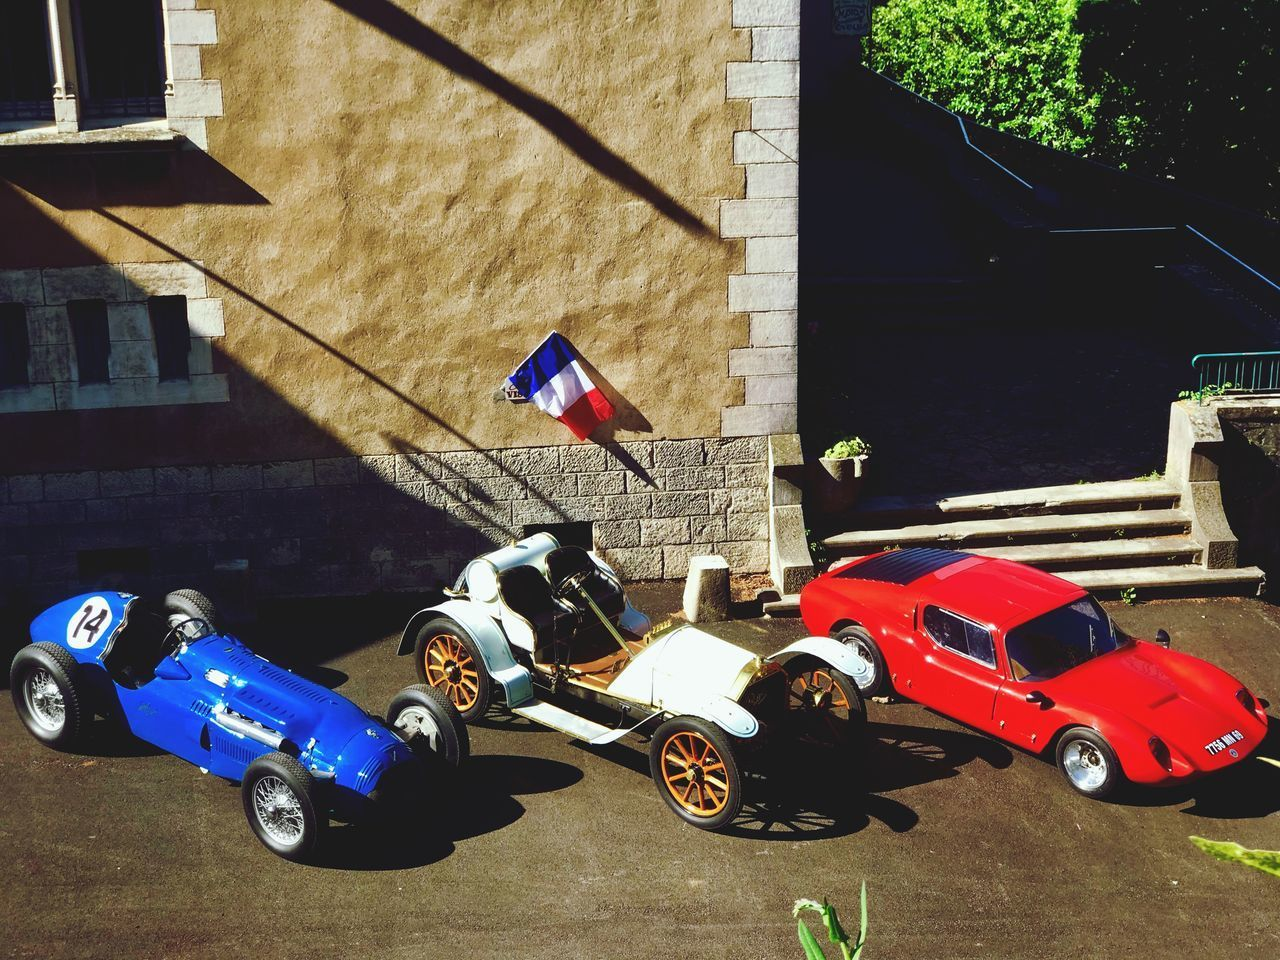 car, transportation, motor vehicle, mode of transportation, building exterior, architecture, built structure, city, land vehicle, day, building, high angle view, street, sunlight, toy, no people, outdoors, nature, toy car, scooter, garage